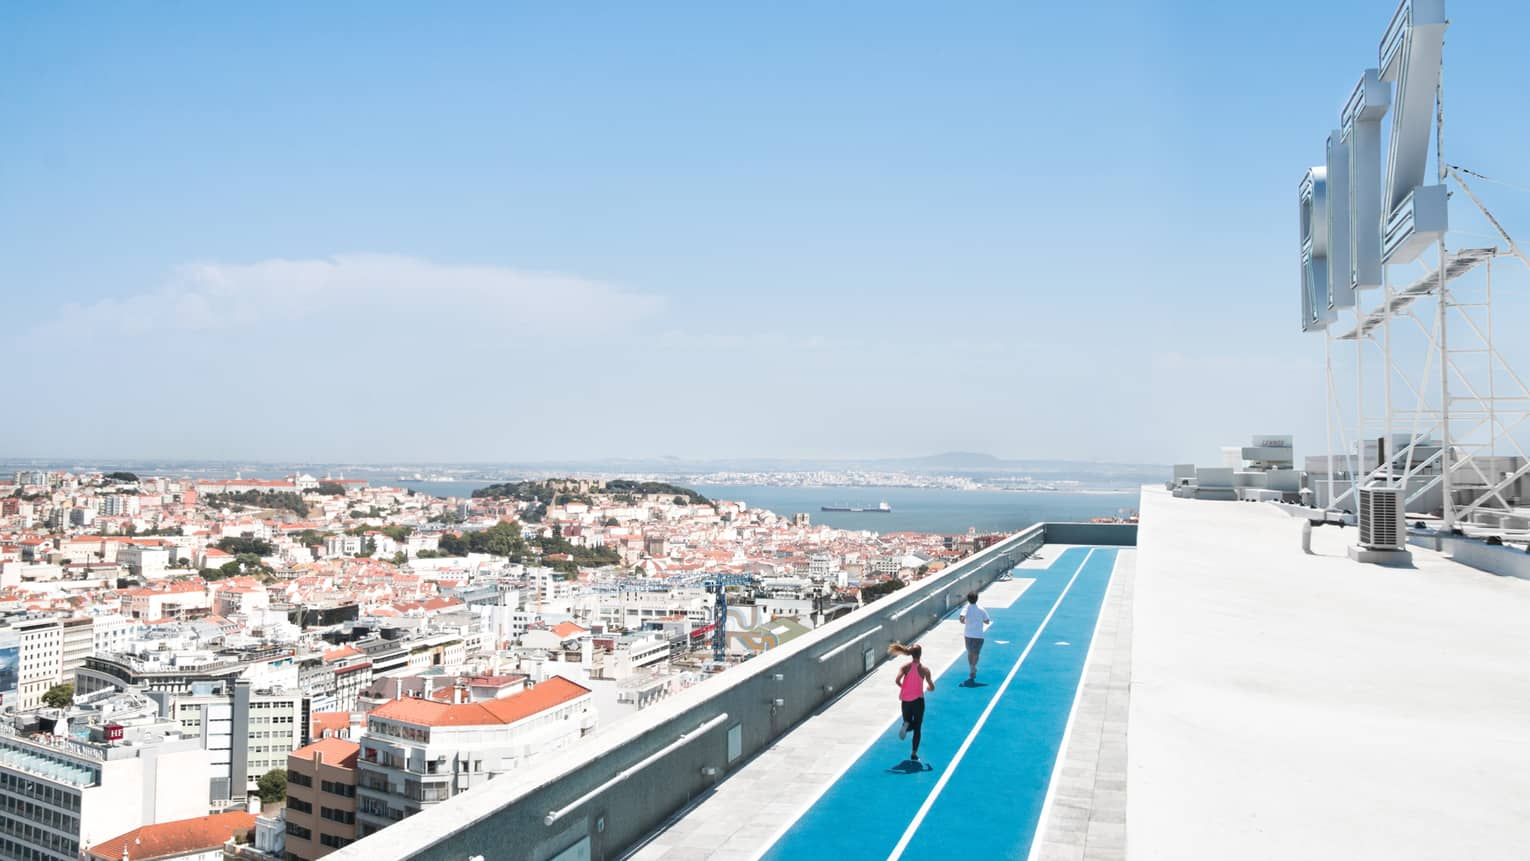 Aerial view of backs of man and woman running on blue rooftop outdoor track, Lisbon city roofs below